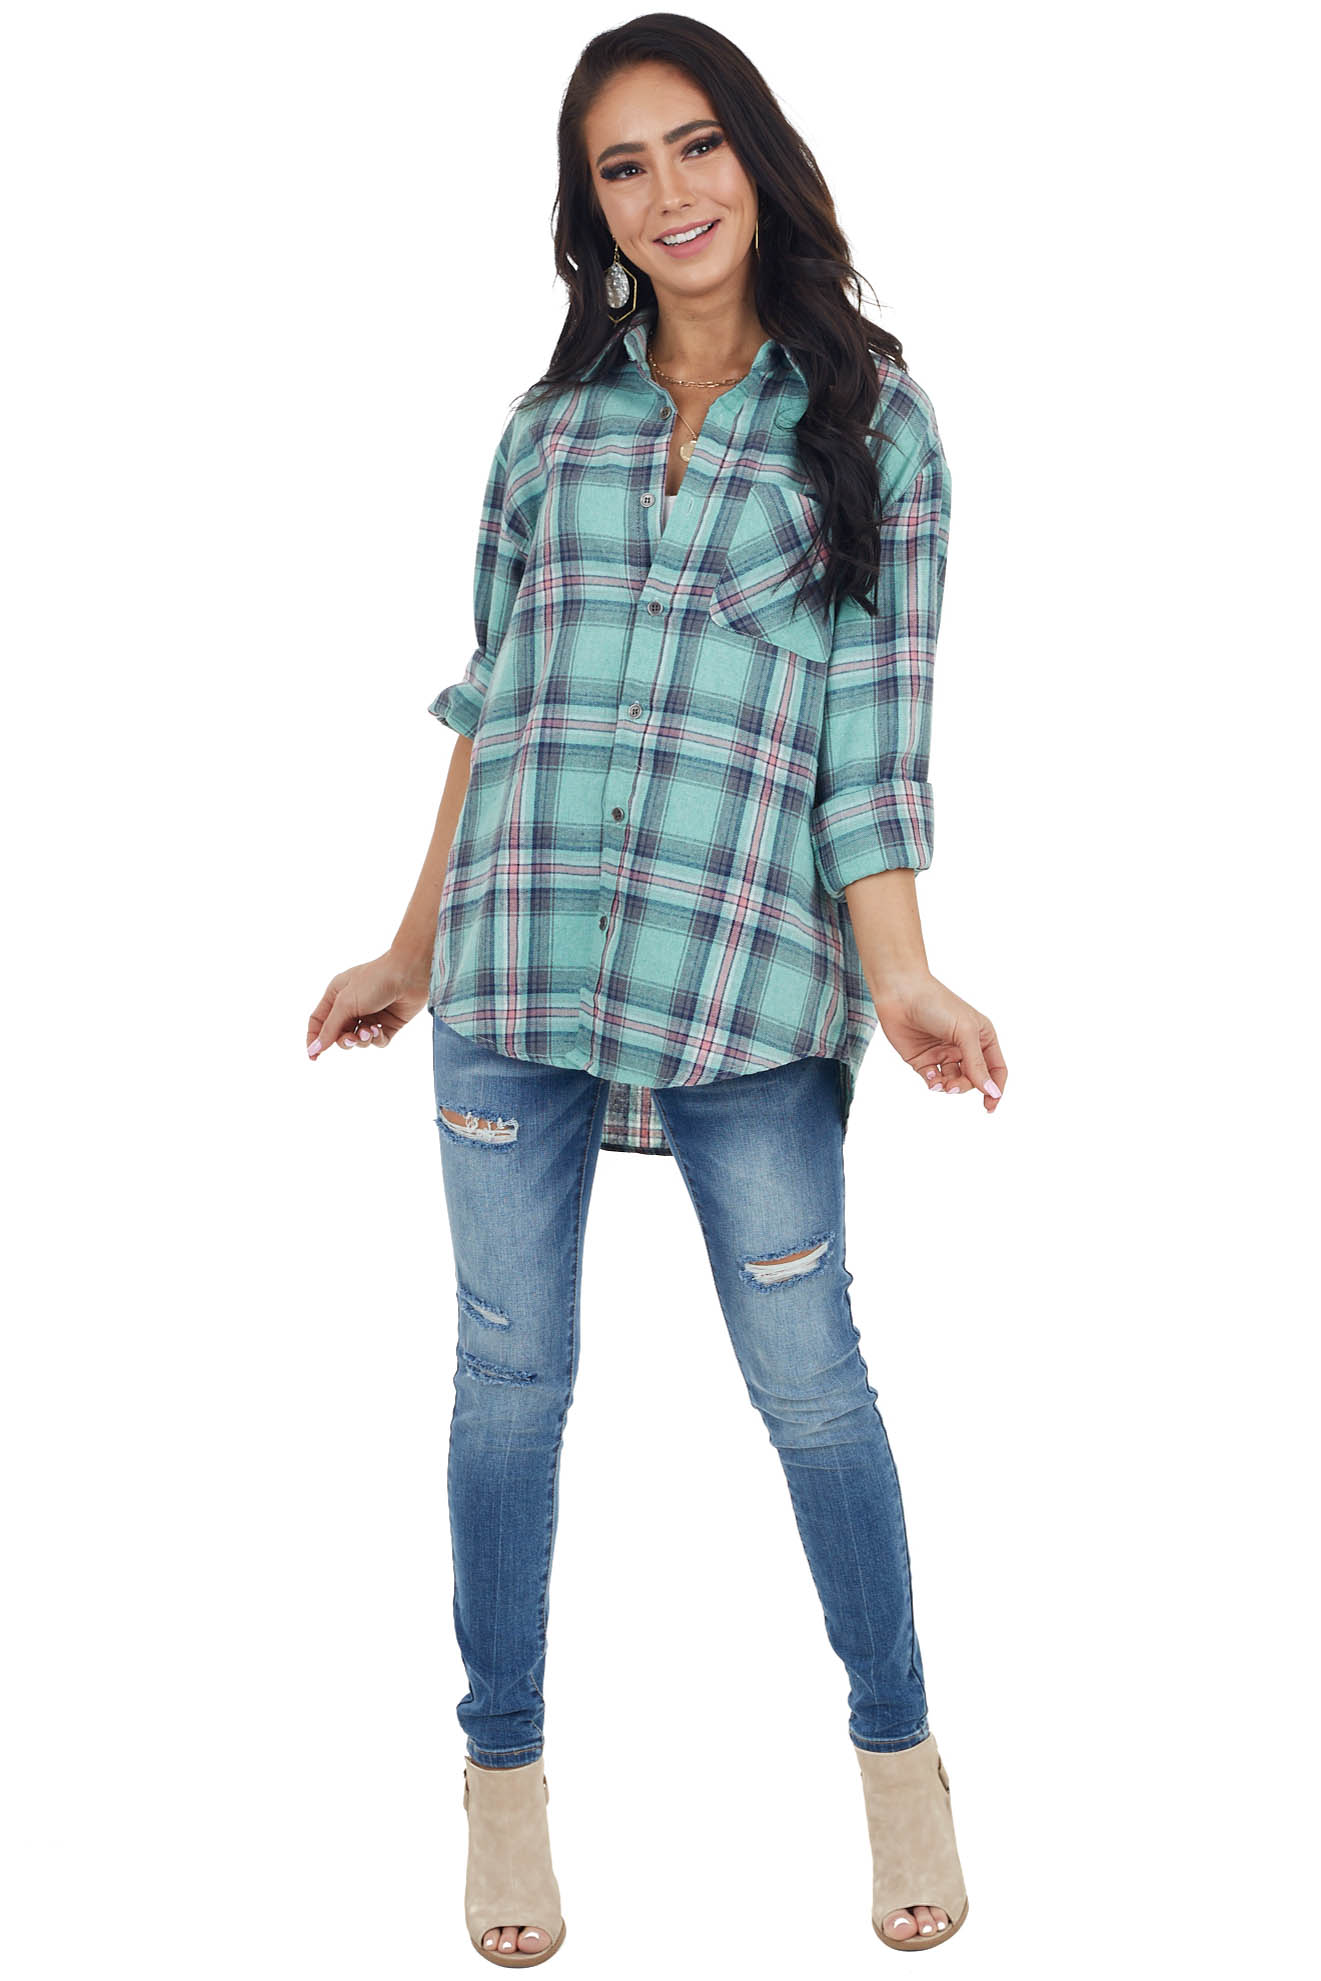 Faded Jade Plaid Long Sleeve Flannel Top with Button Detail